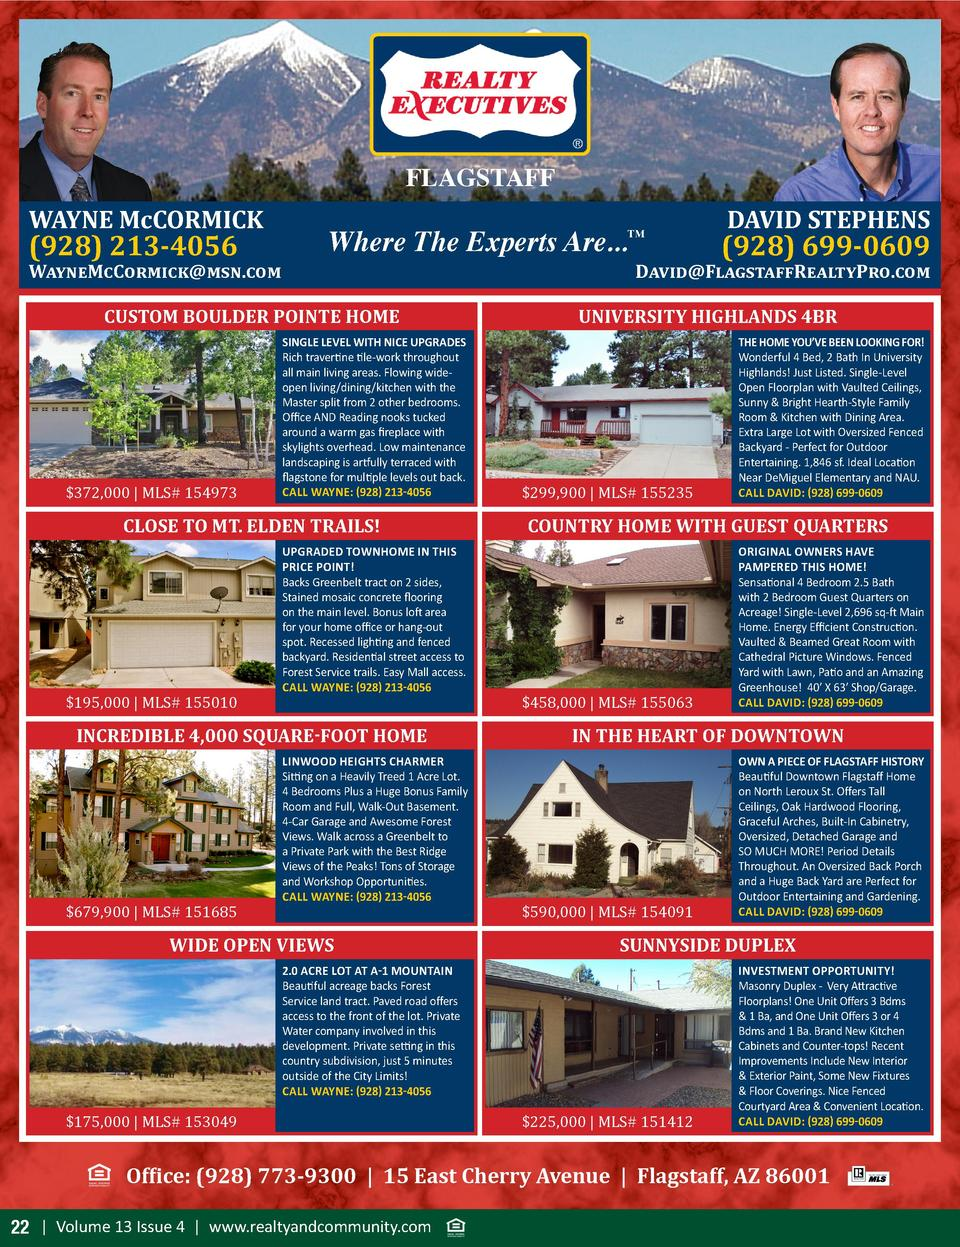 FLAGSTAFF WAYNE McCORMICK   928  213-4056  WayneMcCormick msn.com  Where The Experts Are...       CUSTOM BOULDER POINTE HO...